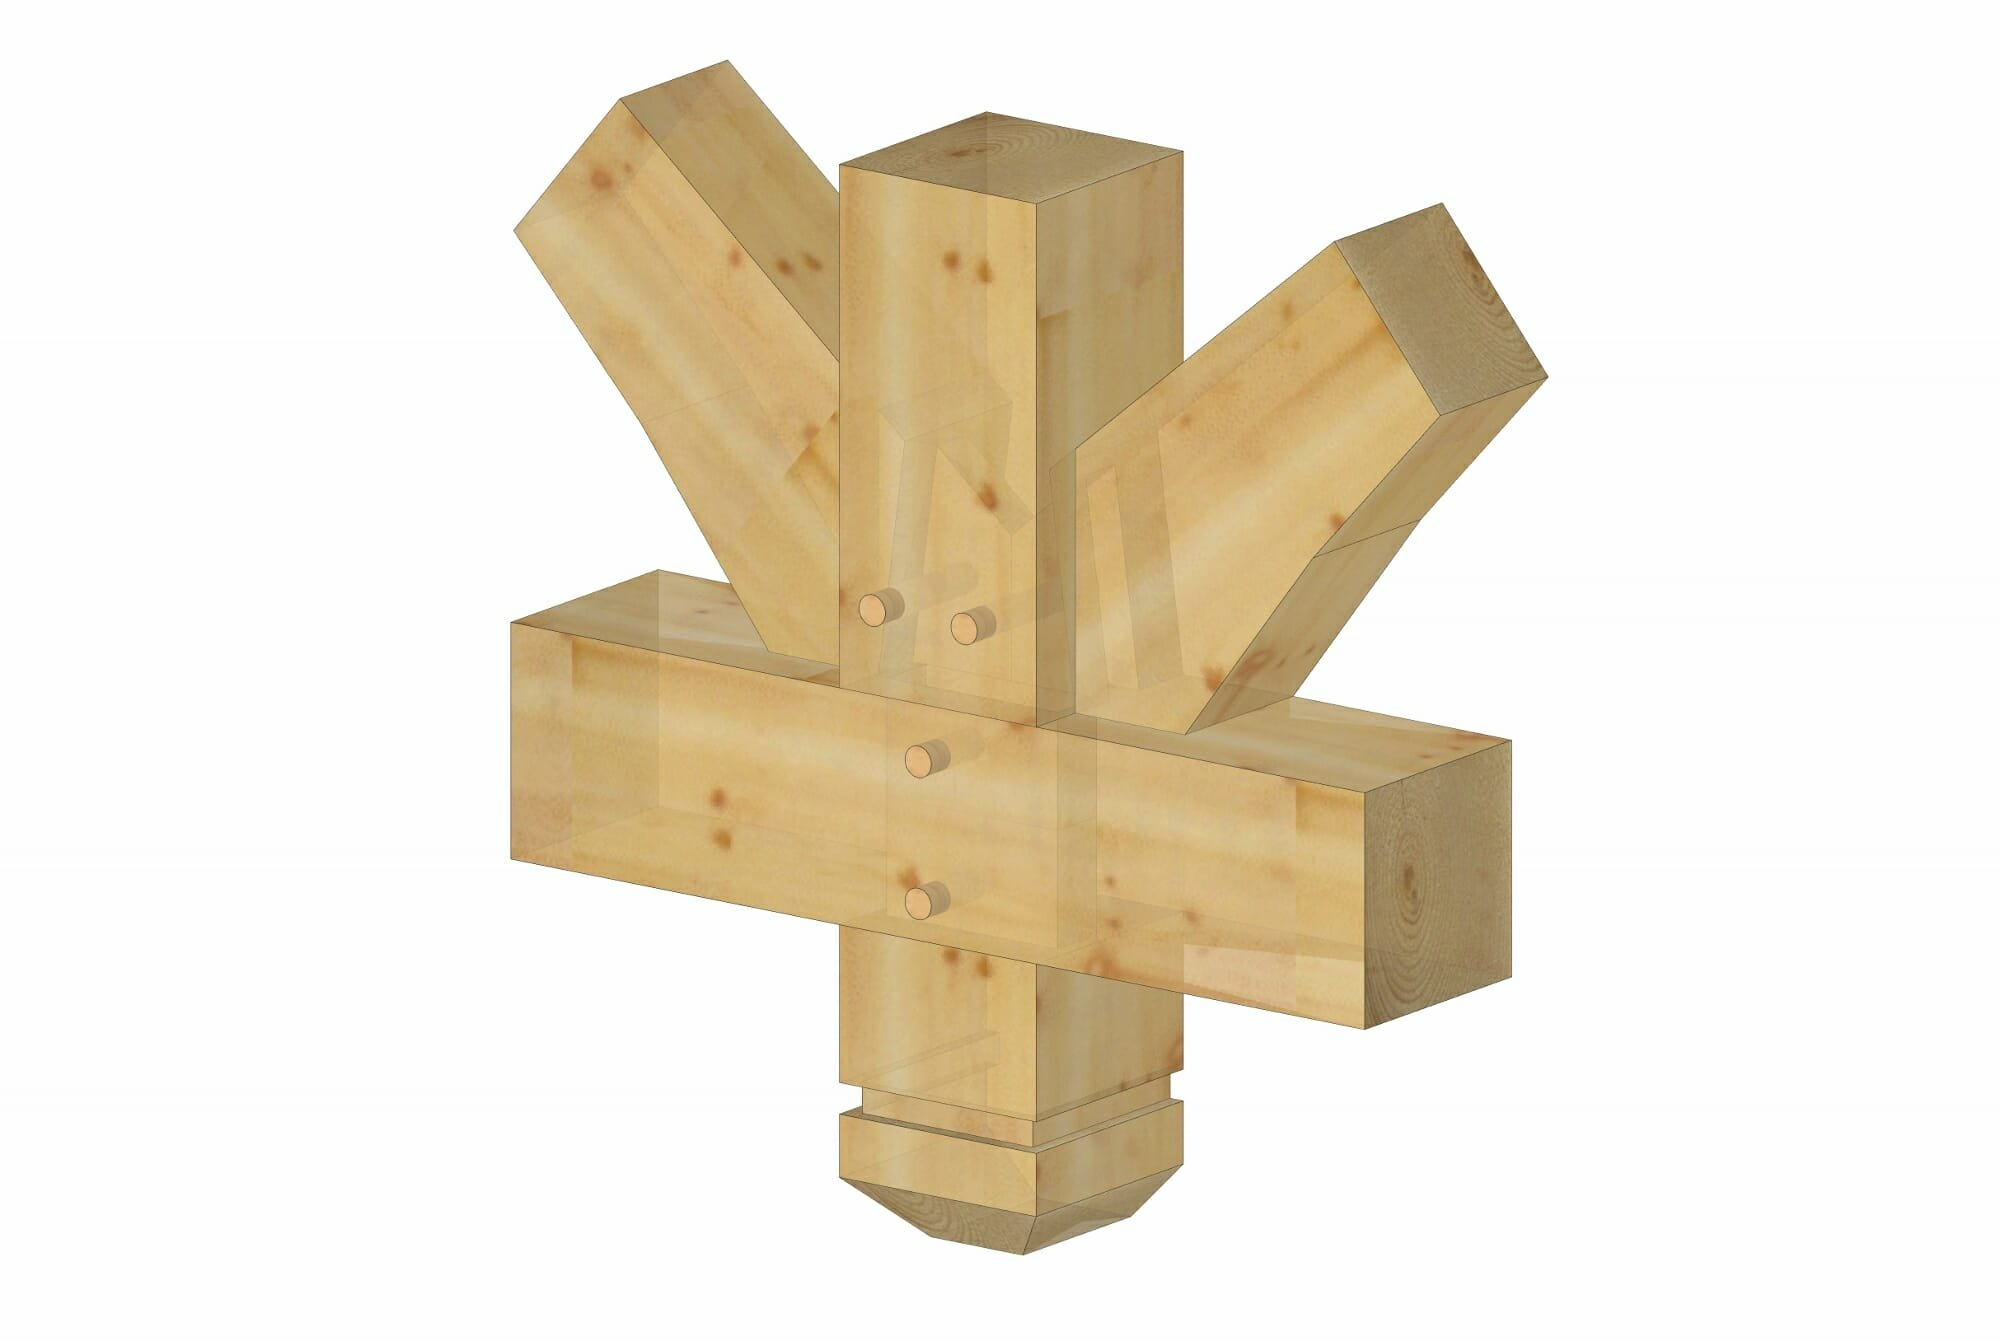 Traditional Post & Beam Joinery | Handcrafted Timber Connections